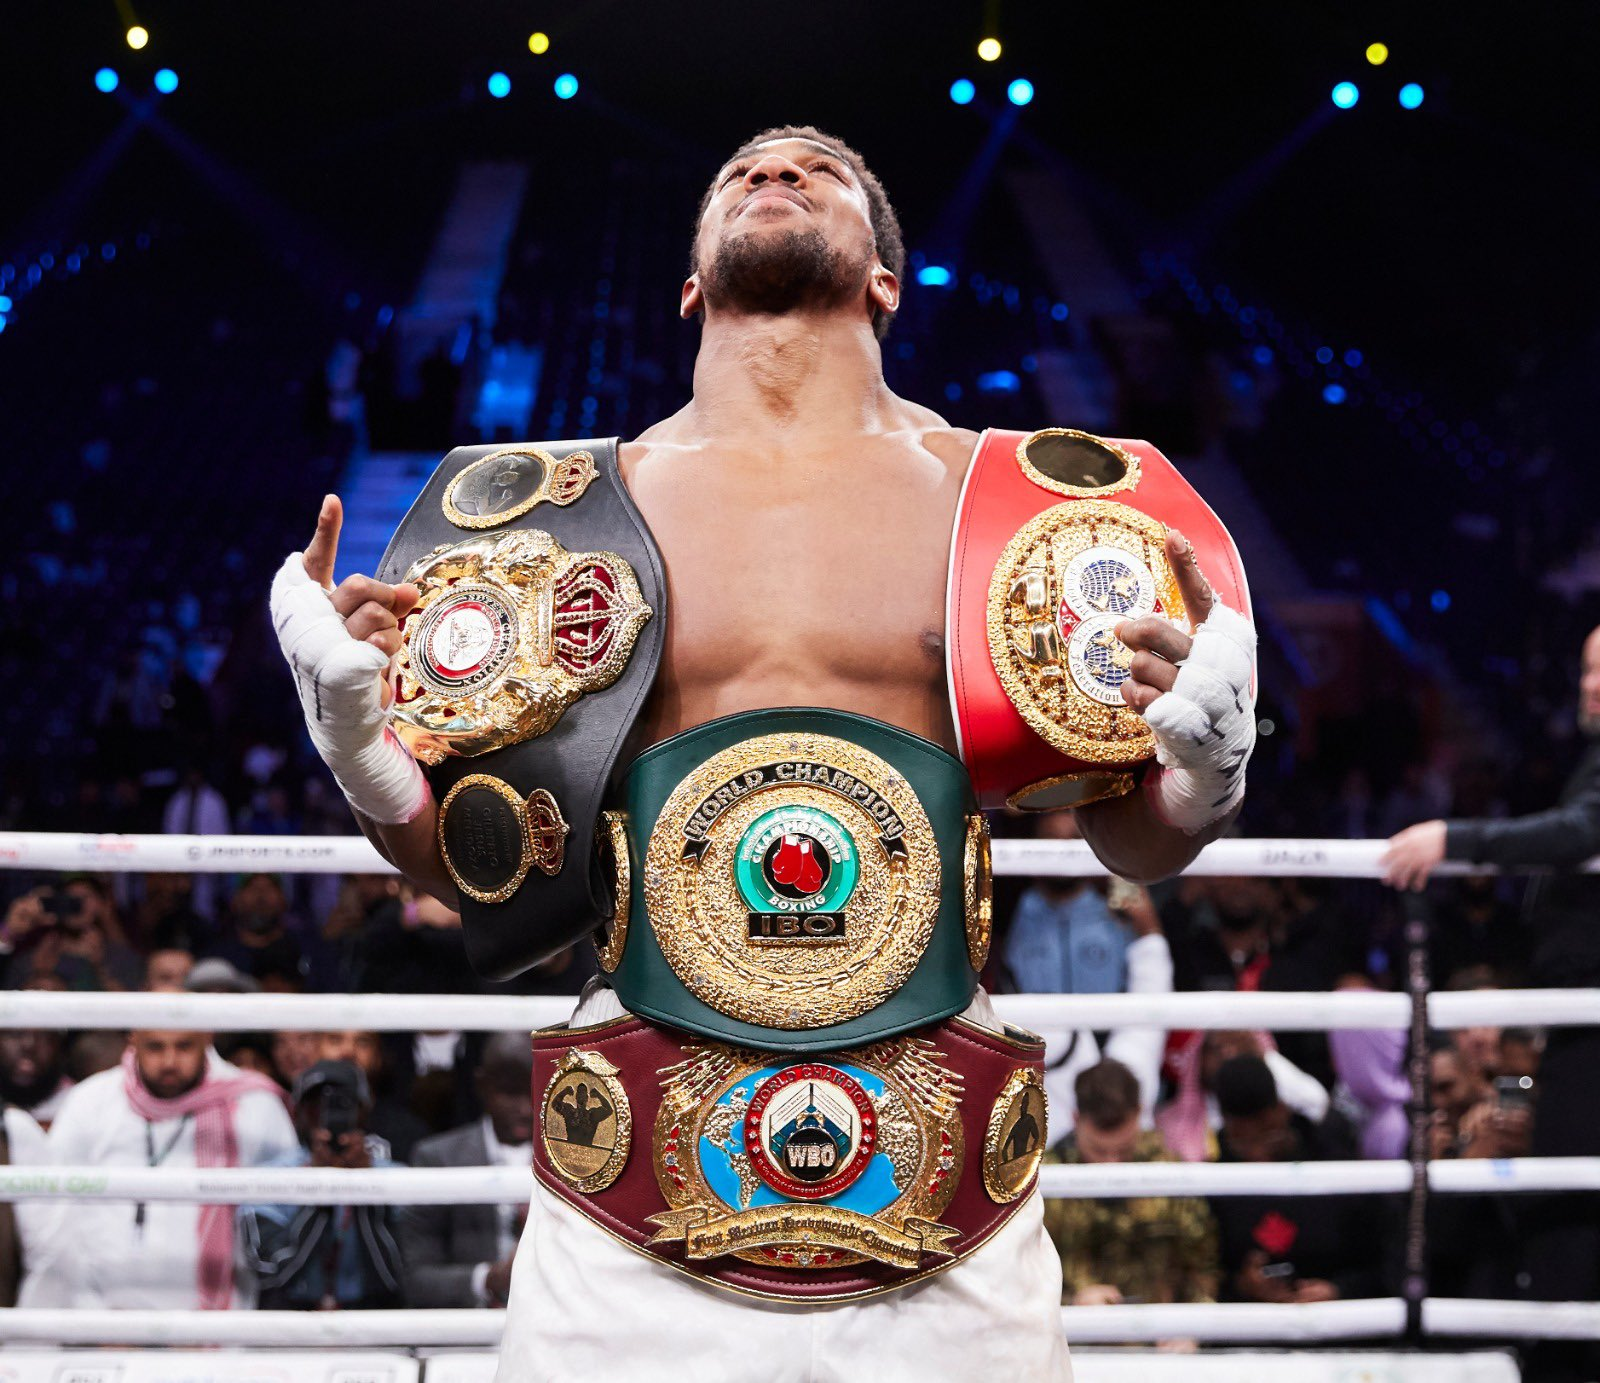 'I won't chase a fight with Deontay Wilder' – Anthony Joshua